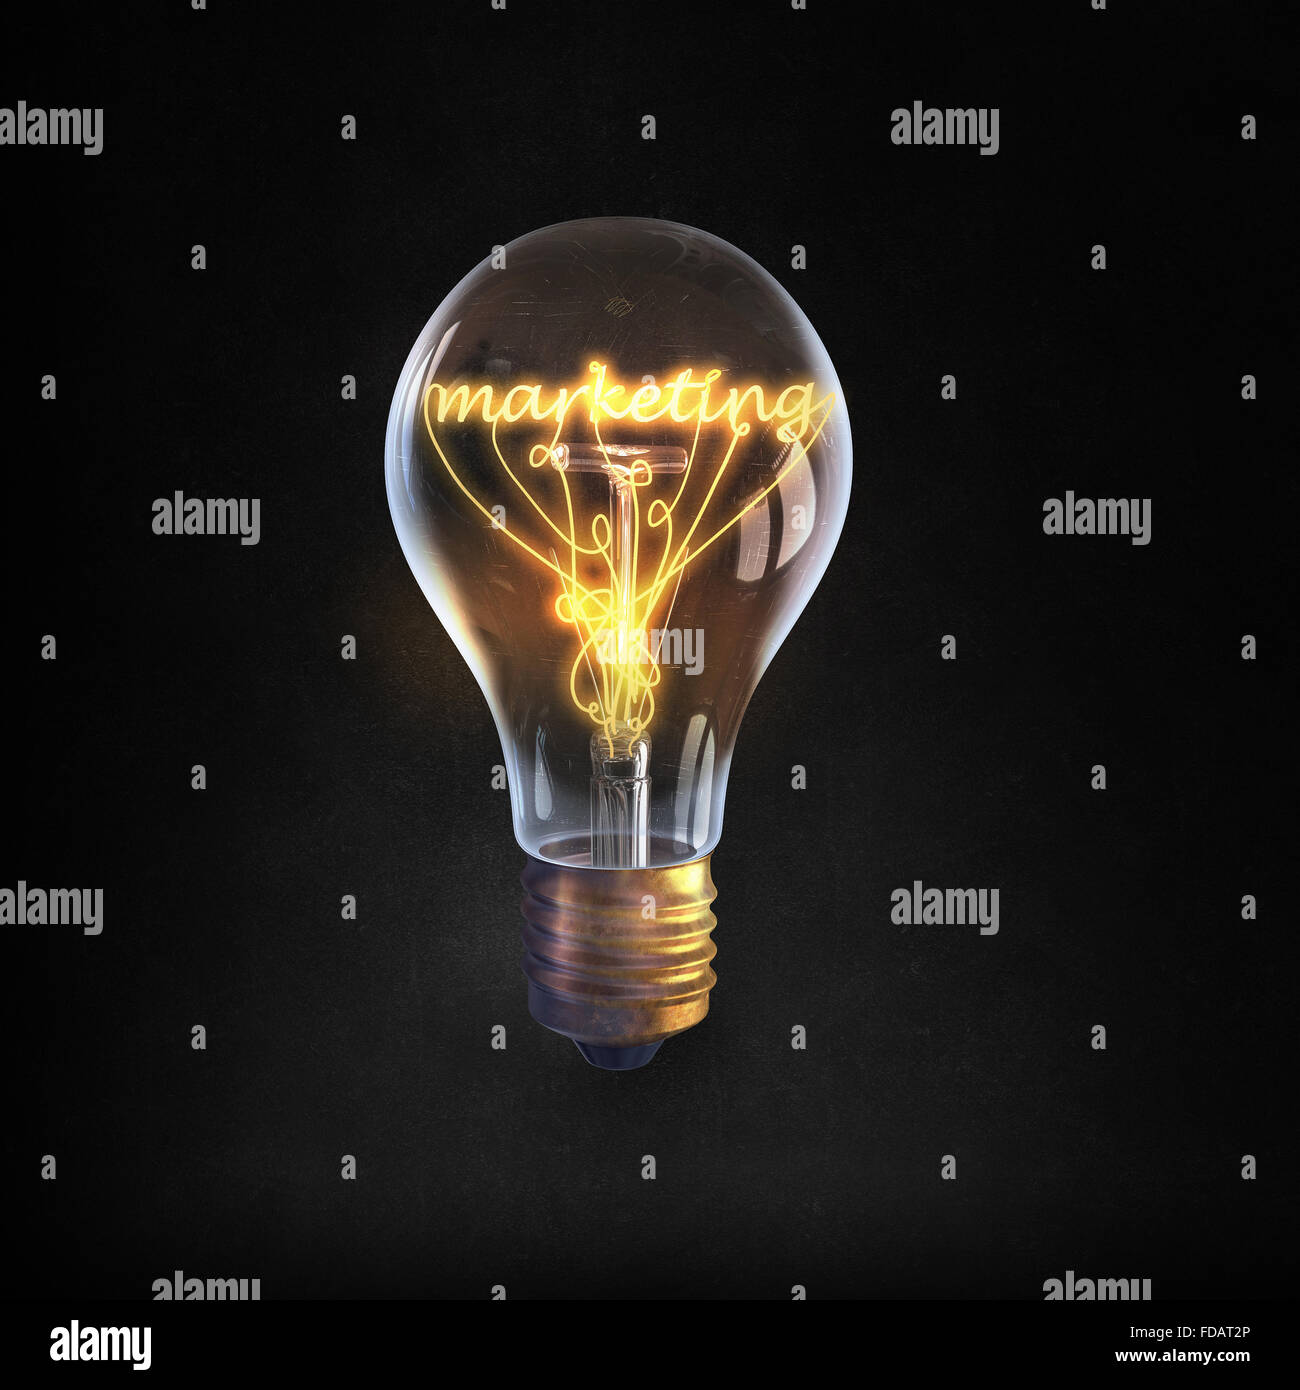 Glowing glass light bulb with marketing word inside - Stock Image